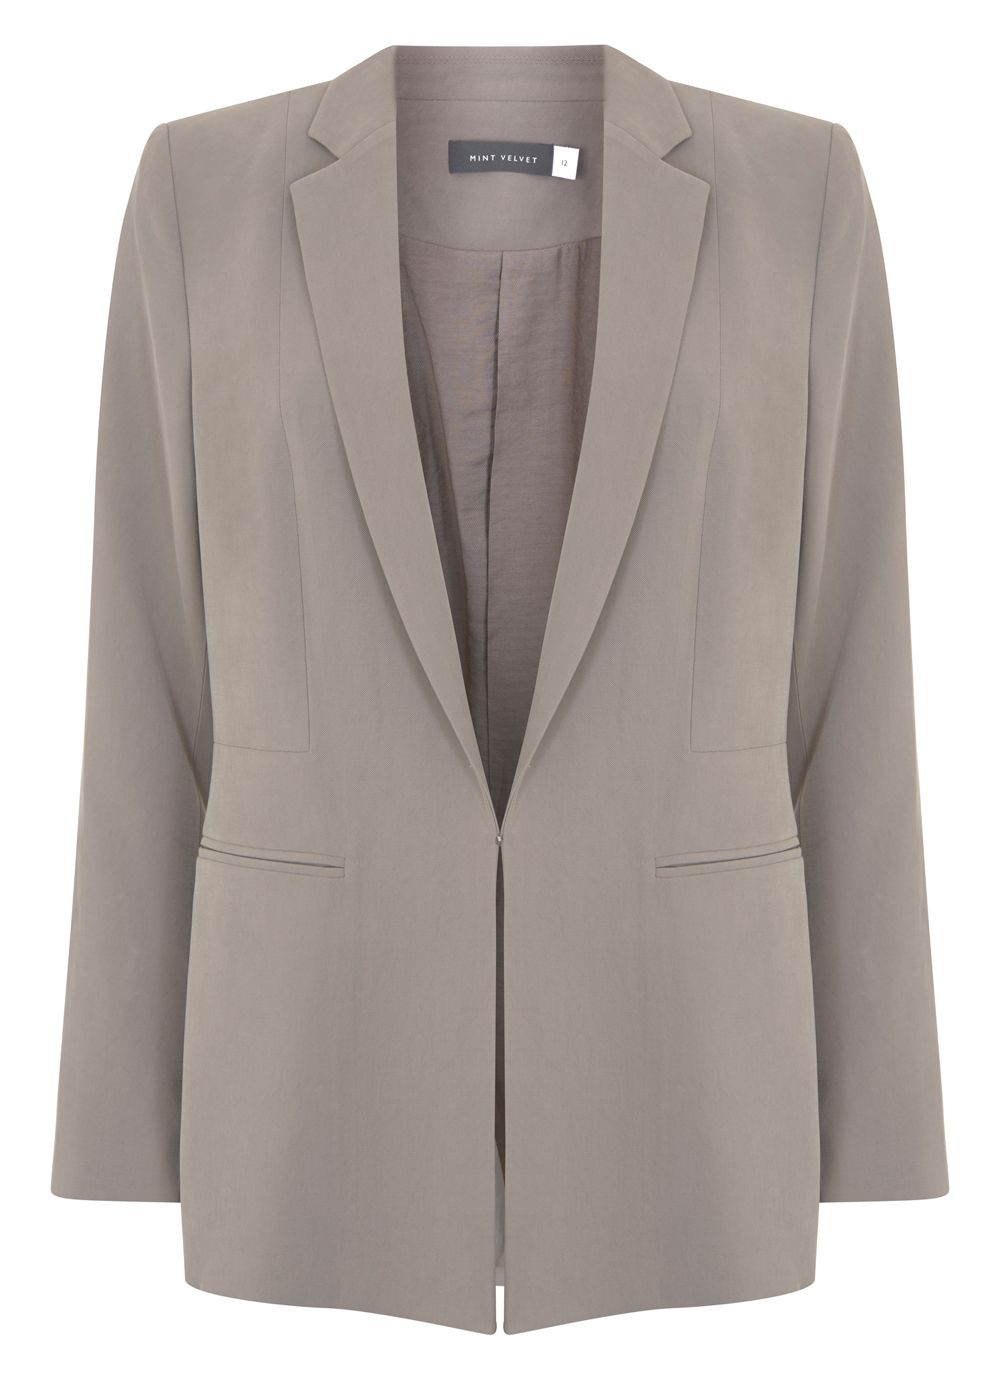 Mint Velvet Latte Tailored Blazer, Neutral